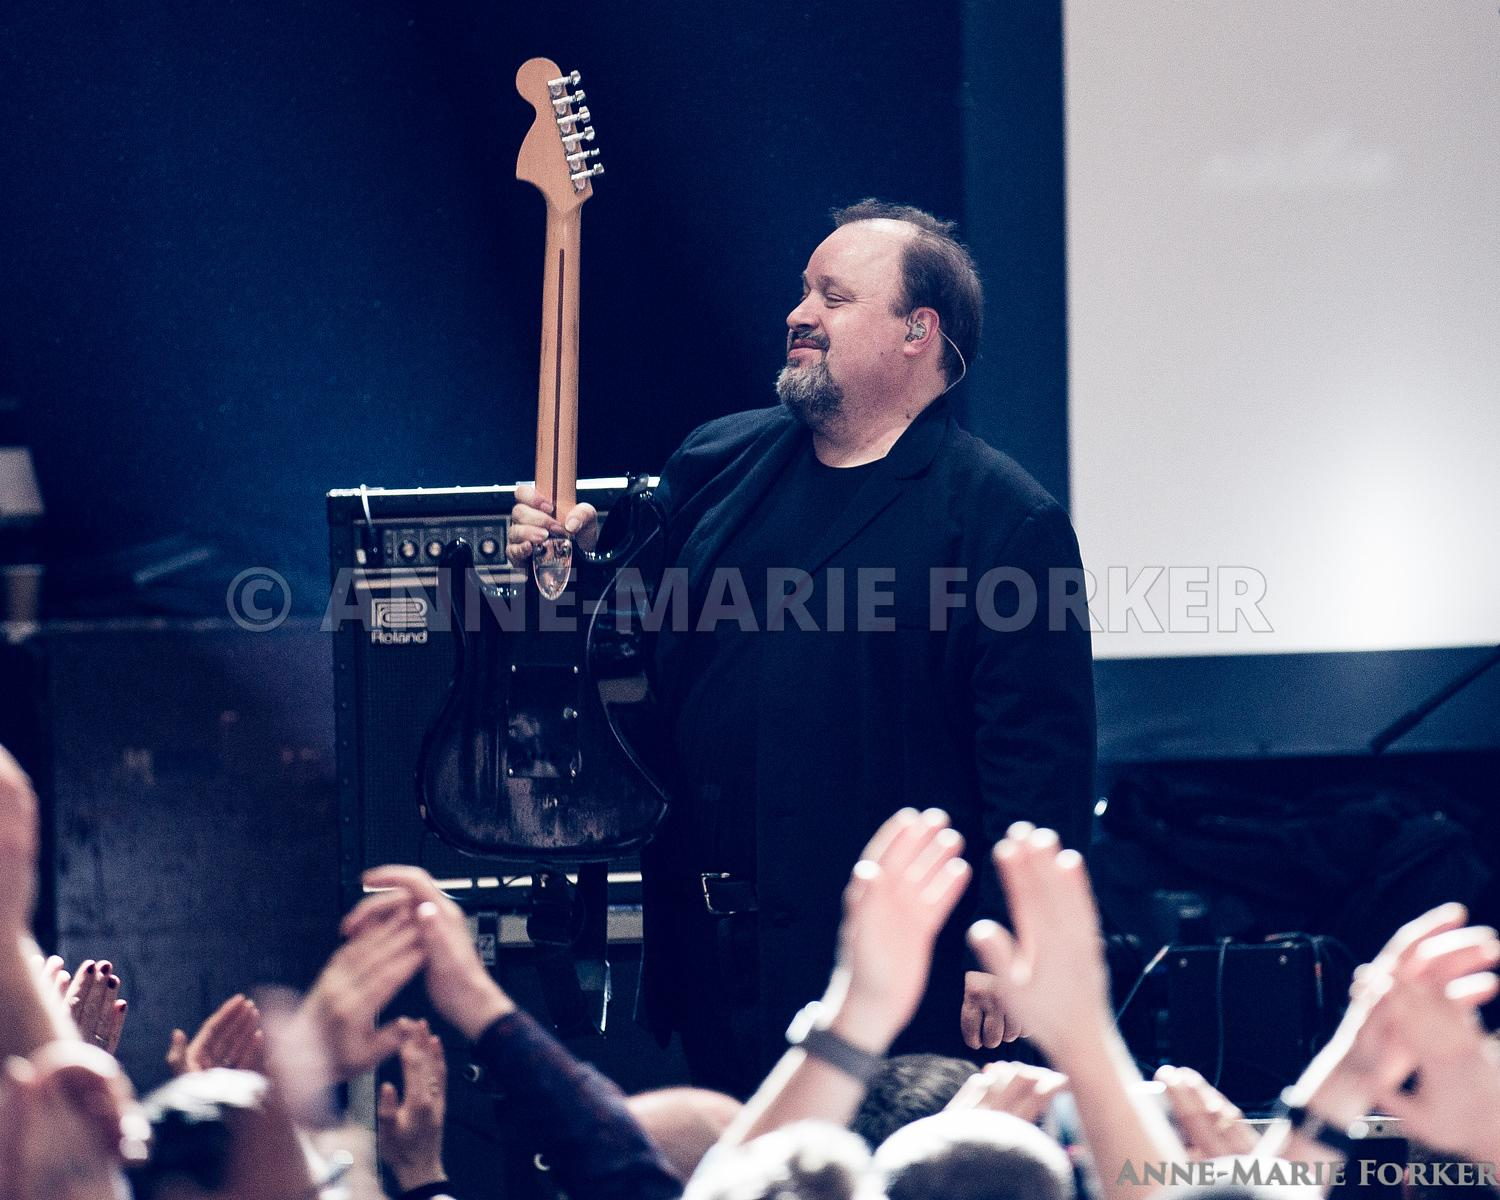 Marillion_-_Bristol_-_AM_Forker-2297